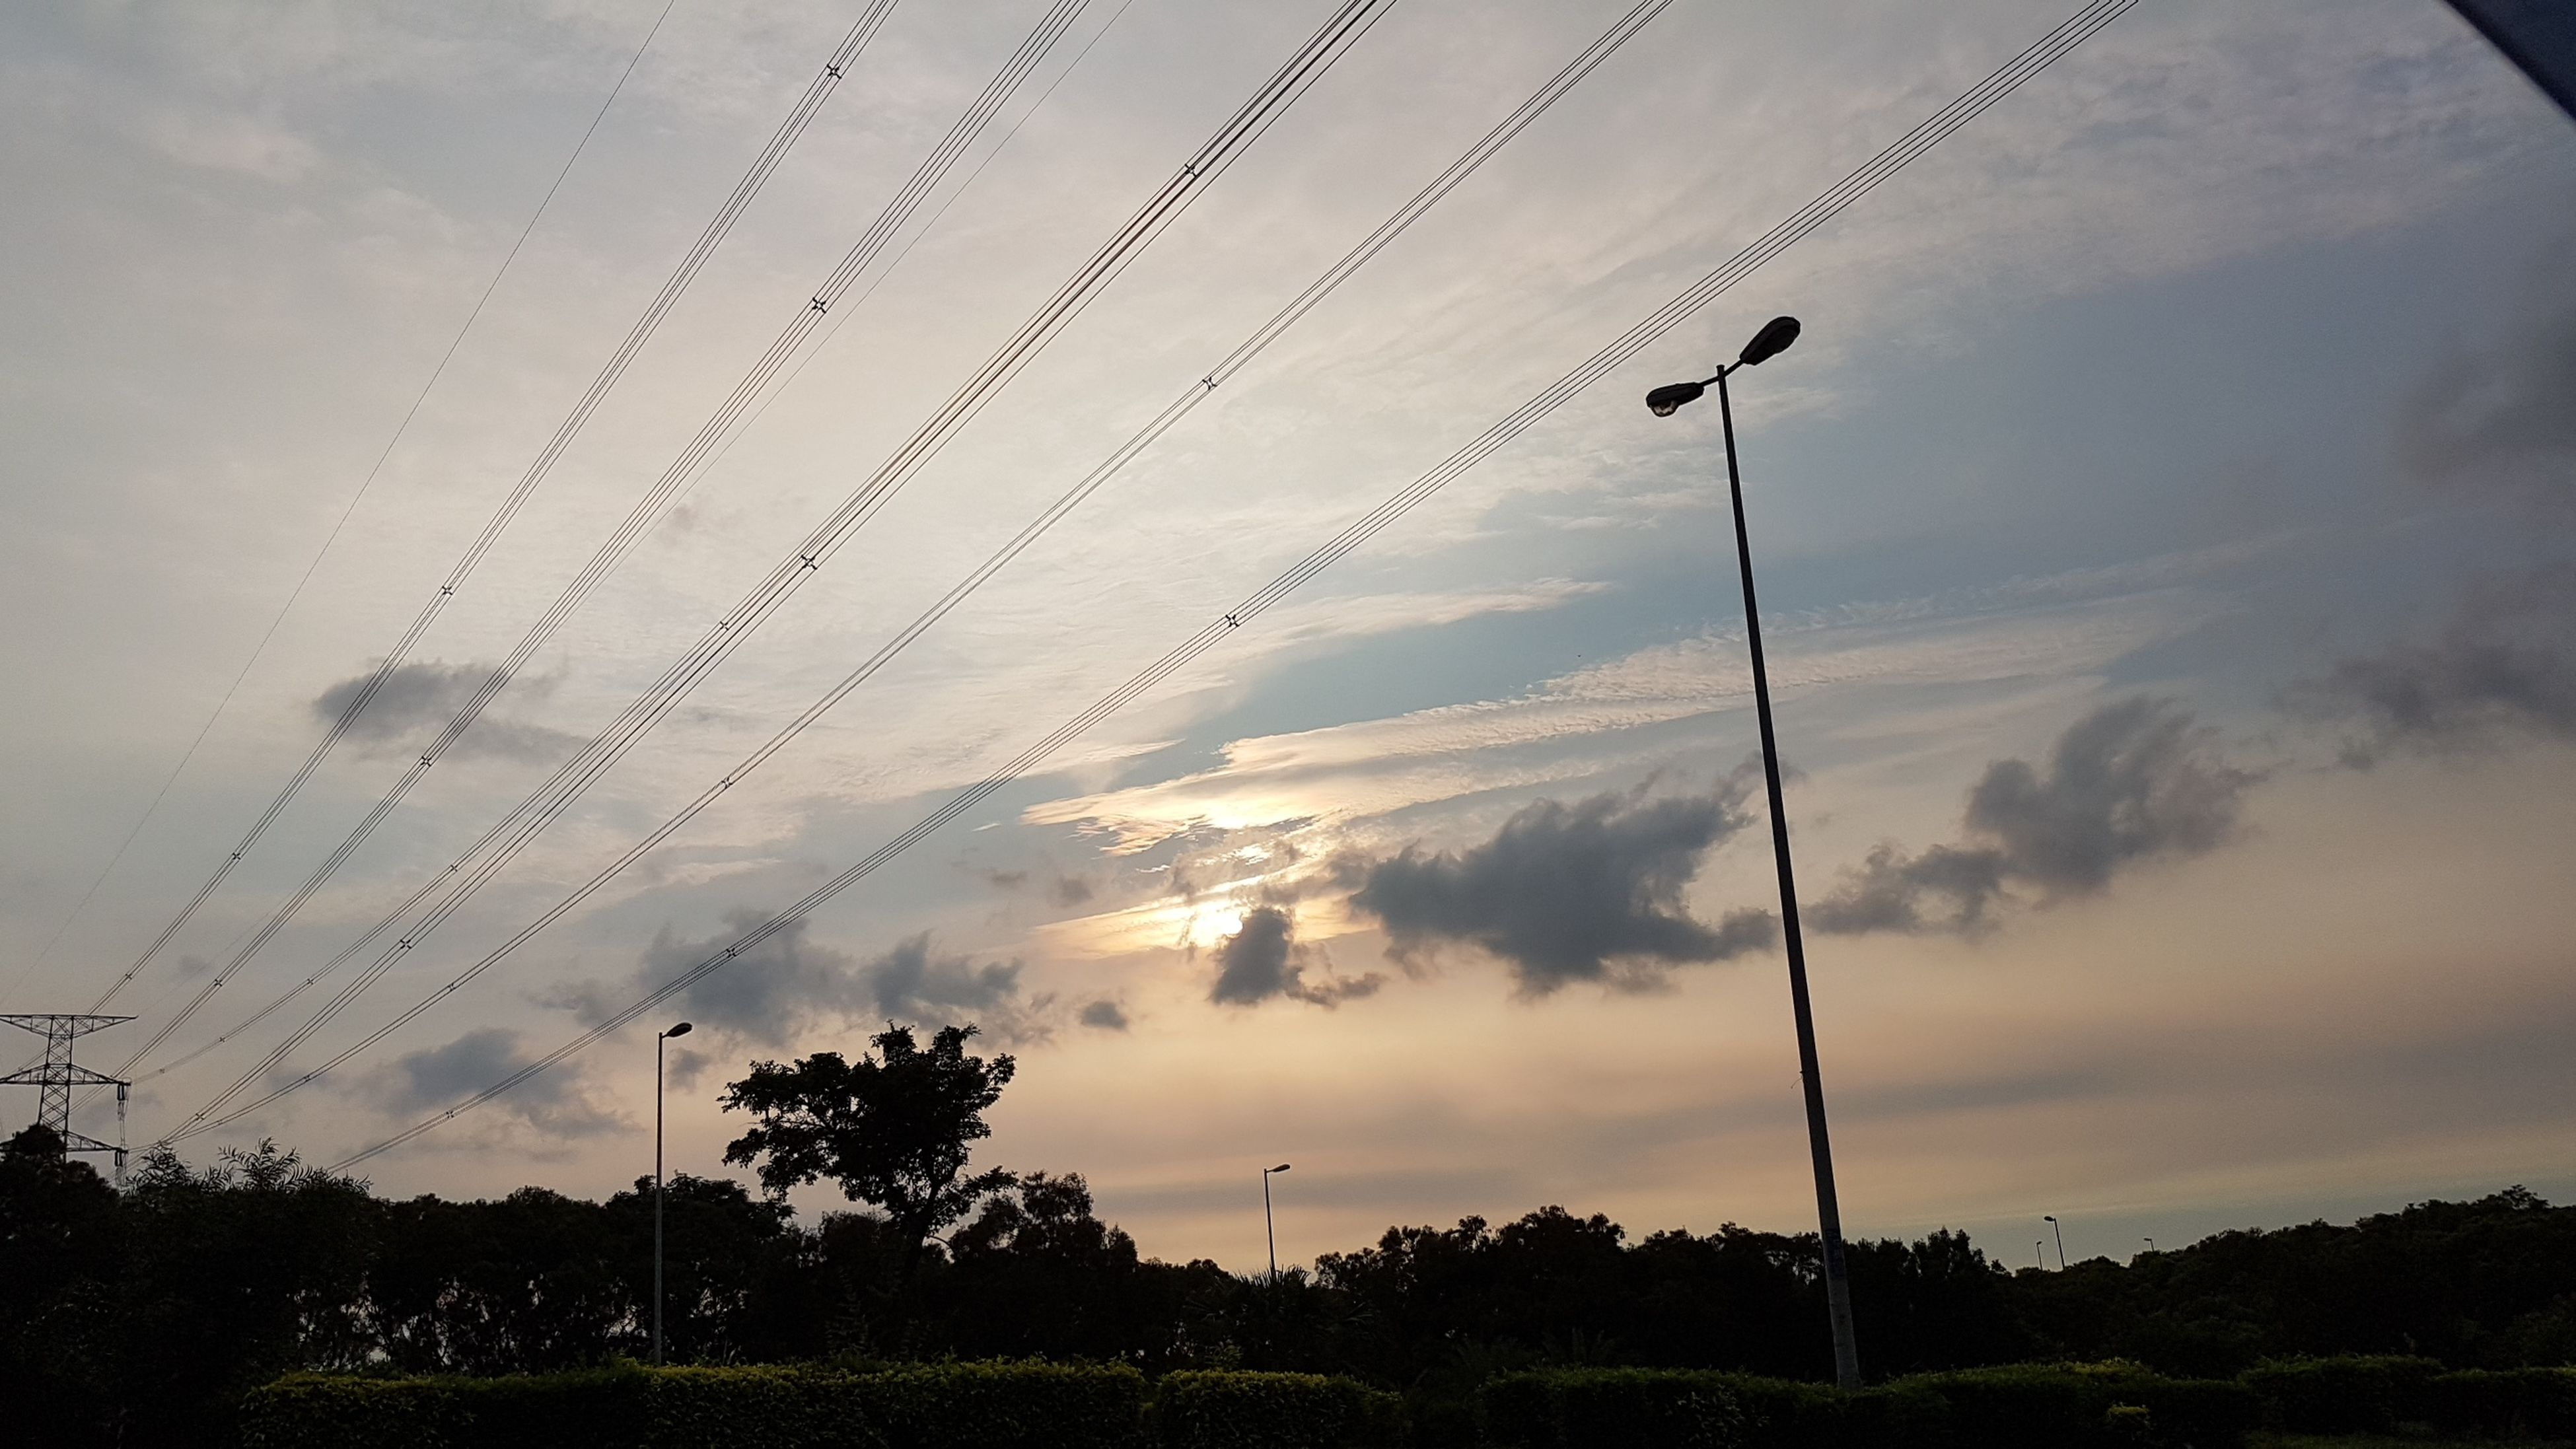 cable, cloud - sky, sky, low angle view, electricity, connection, tree, power line, no people, sunset, technology, power supply, electricity pylon, nature, silhouette, street light, outdoors, beauty in nature, scenics, telephone line, day